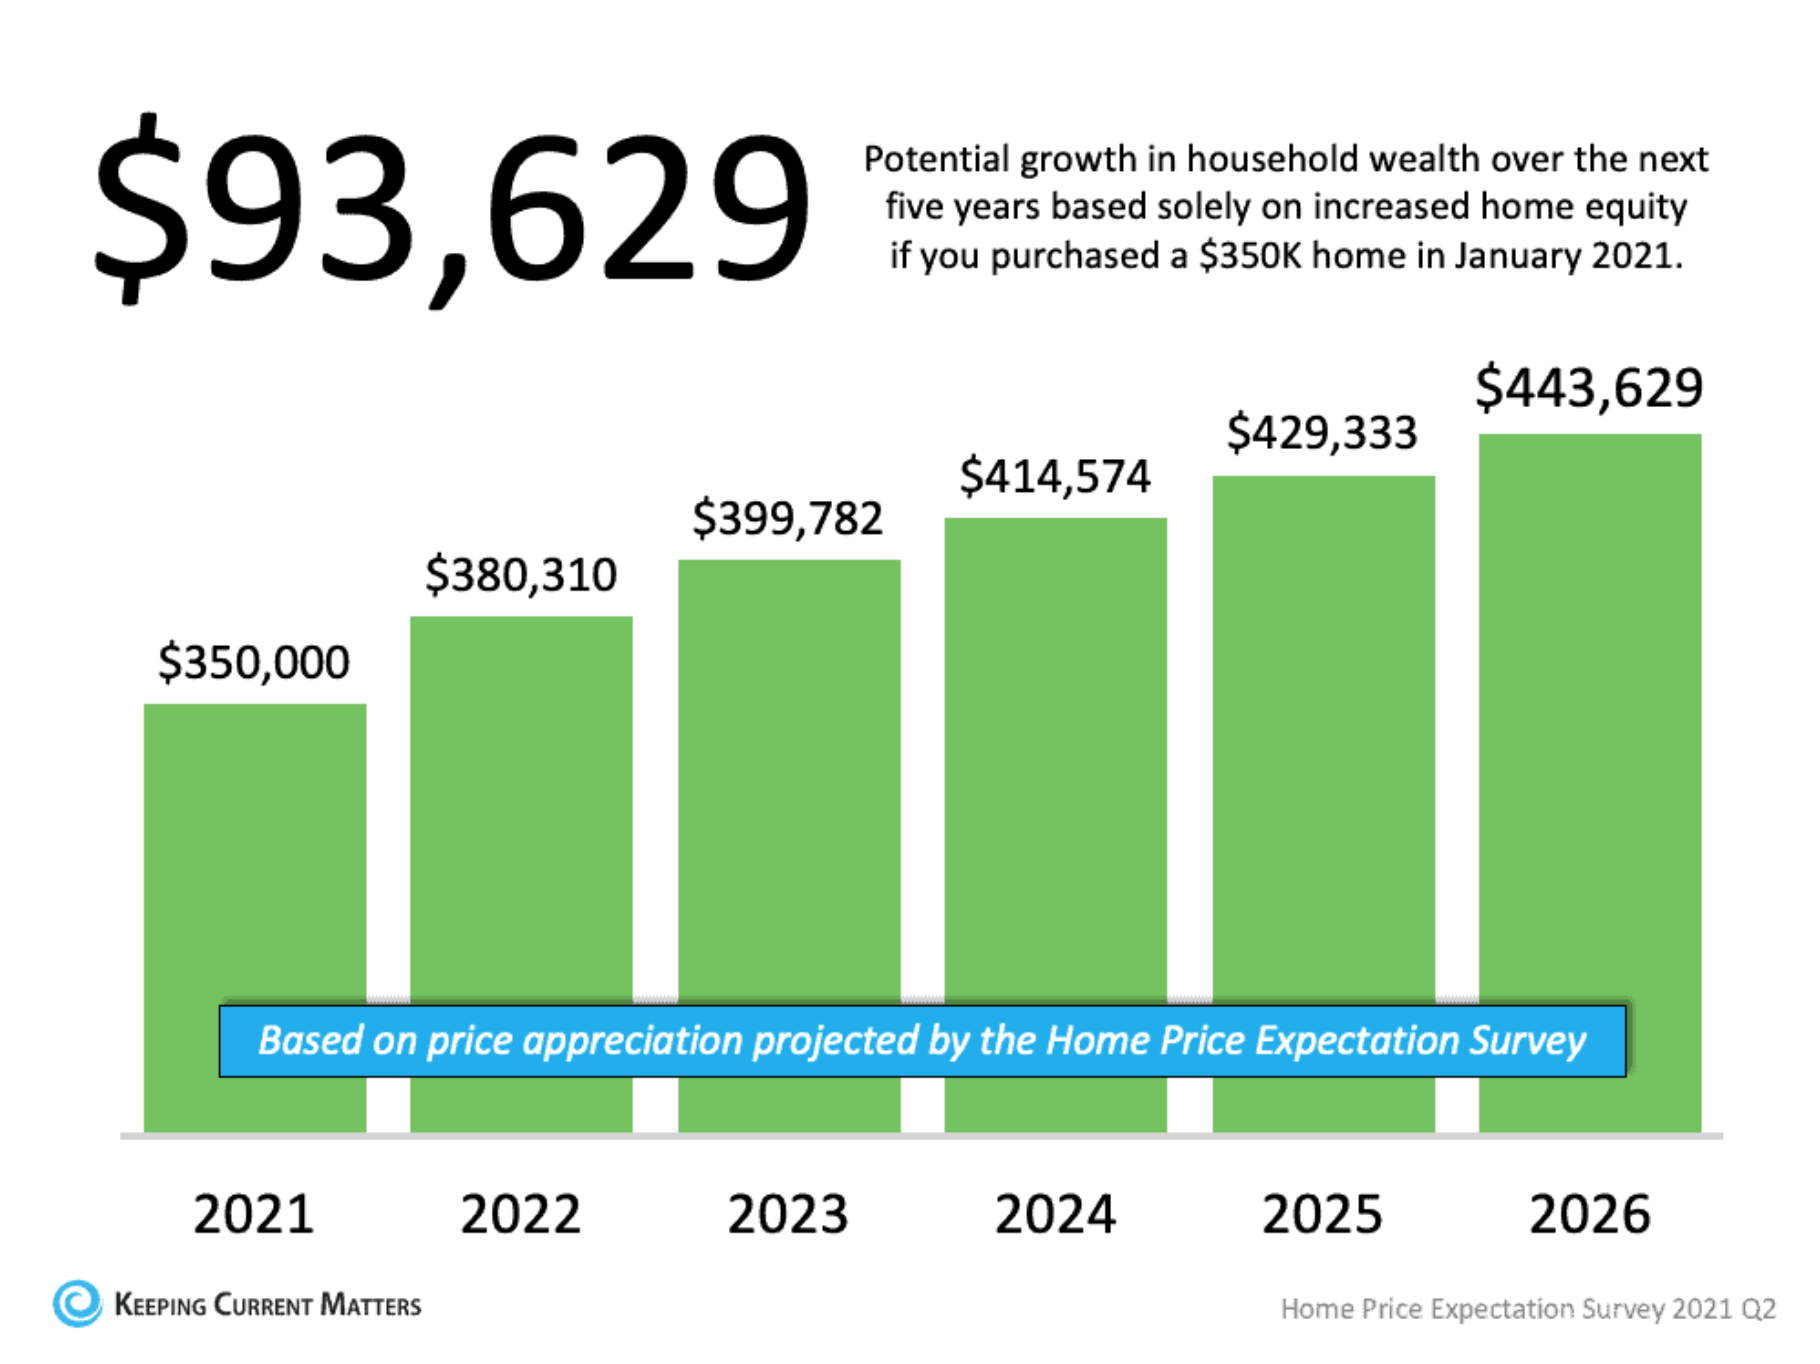 Potential growth in household wealth based on home equity